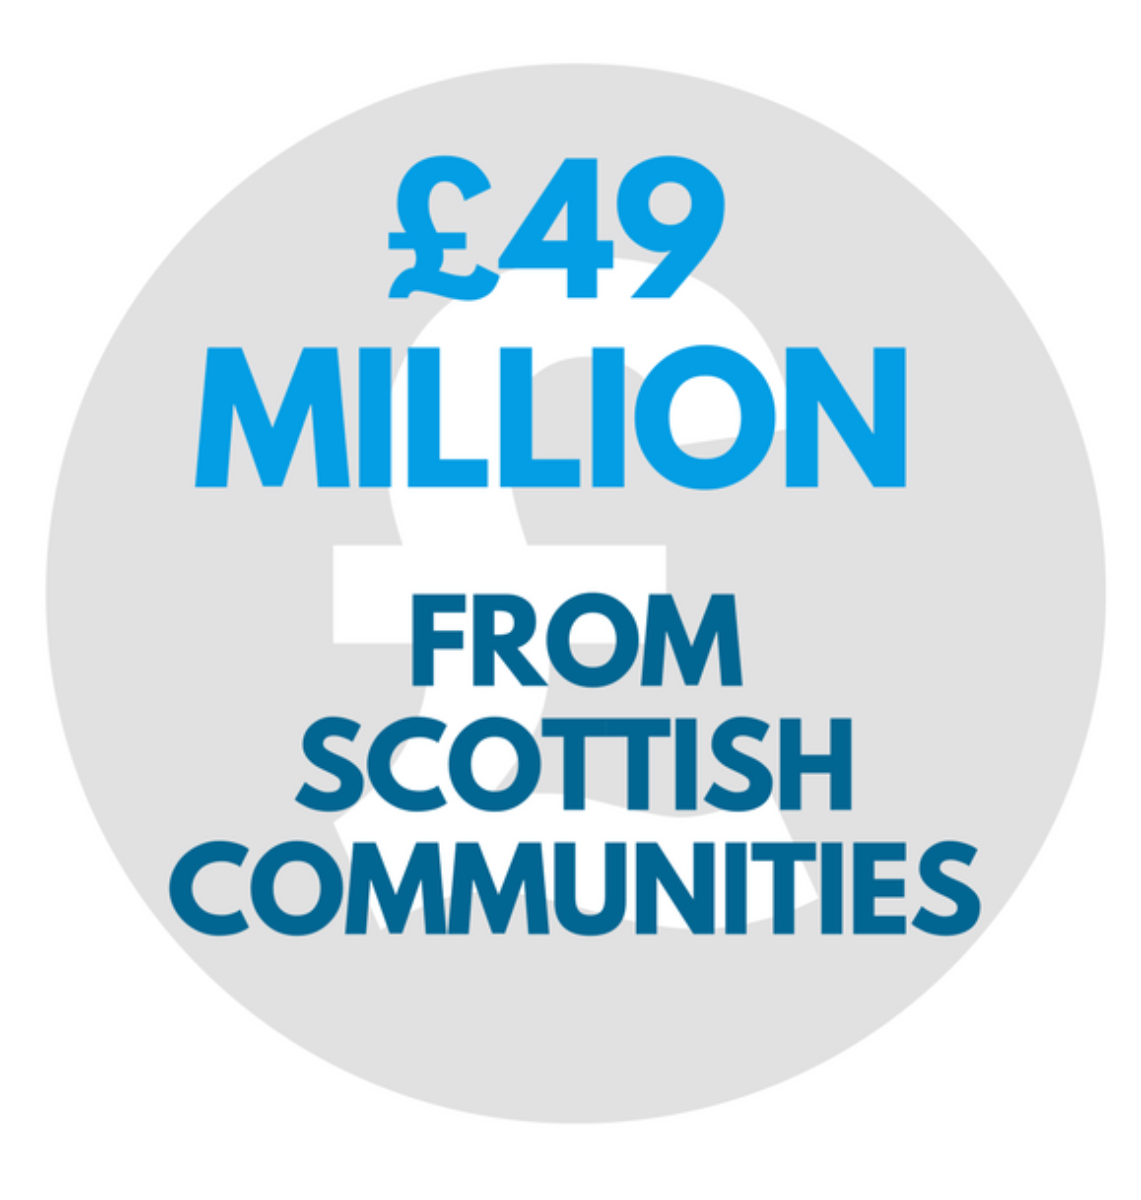 109000 SCOTS 208000 malawians involved 5